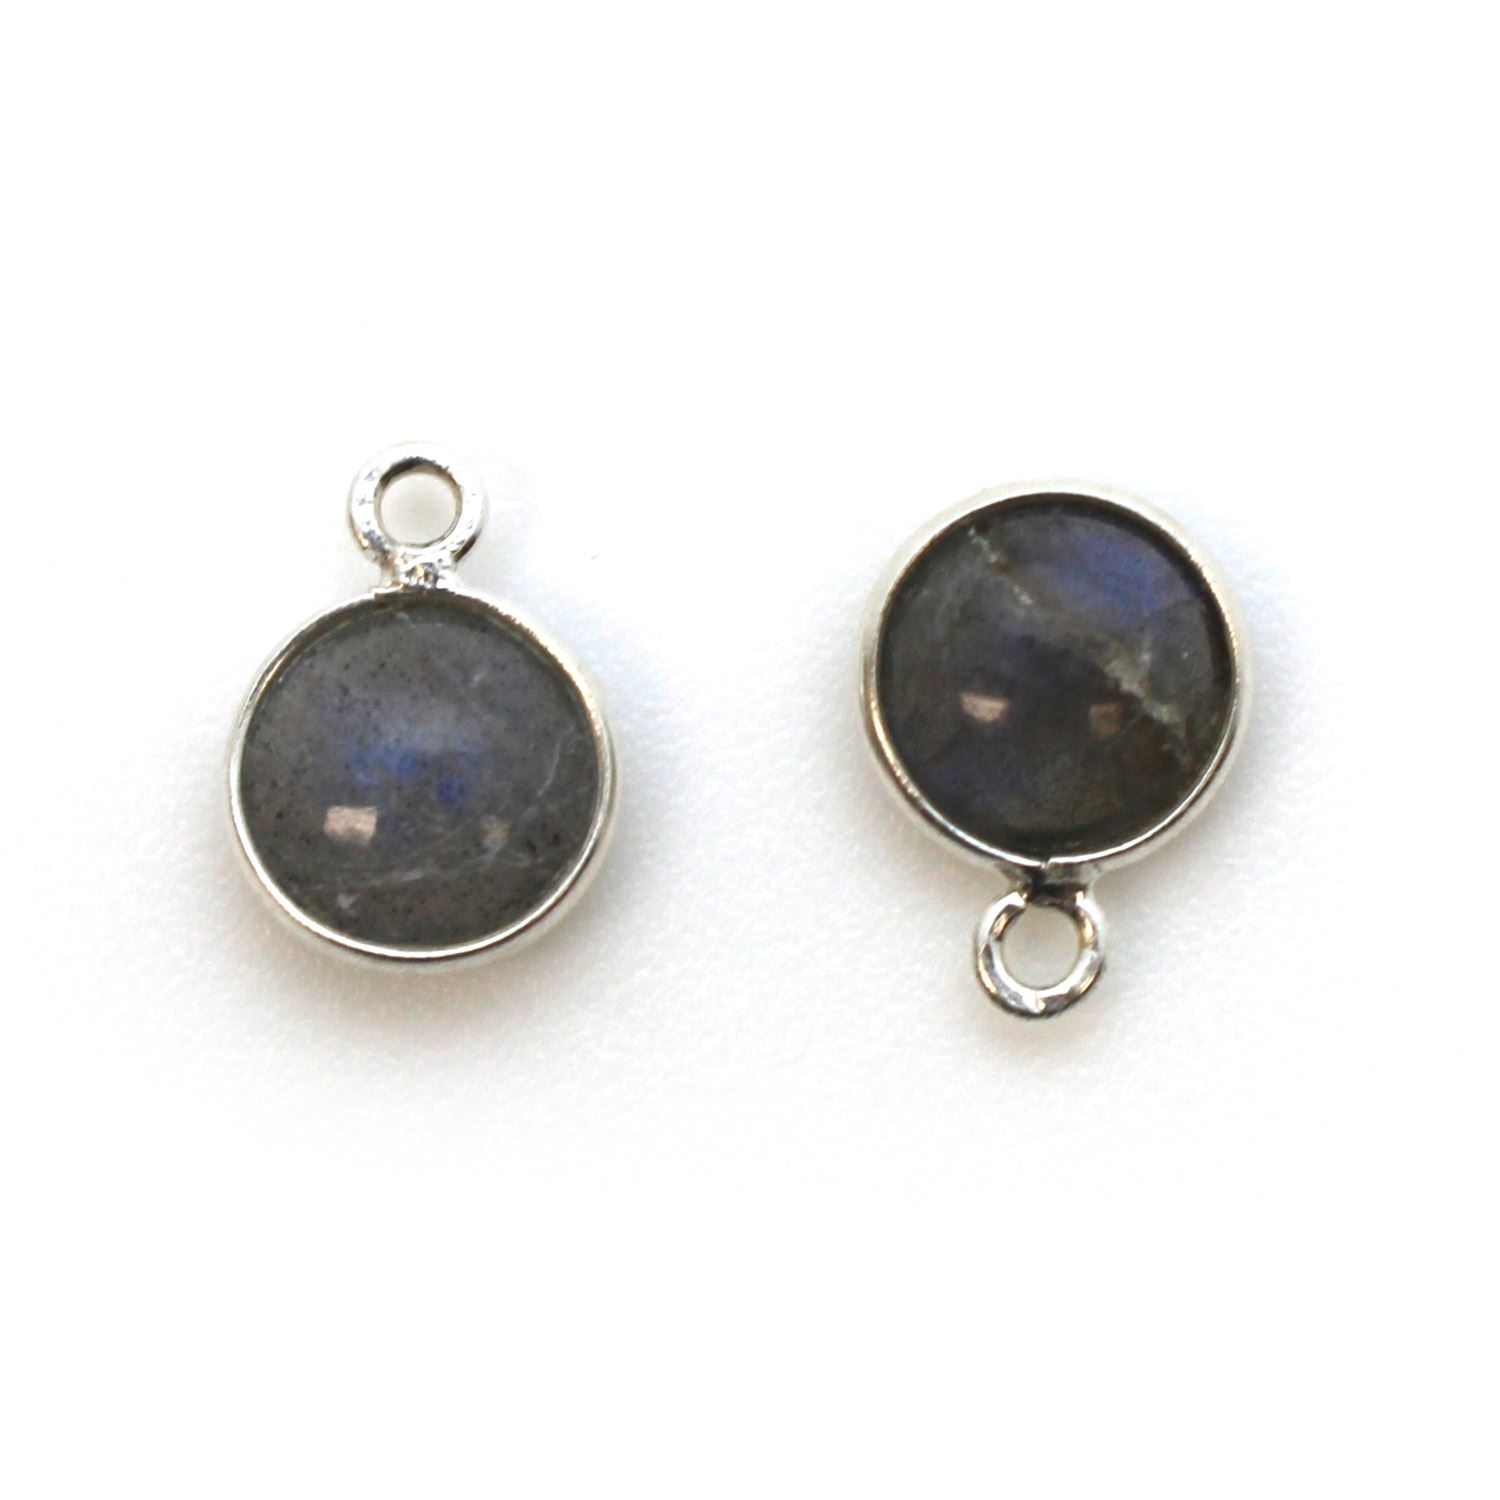 Bezel Charm Pendant - Sterling Silver Charm - Natural Labradorite - Tiny Round Shape